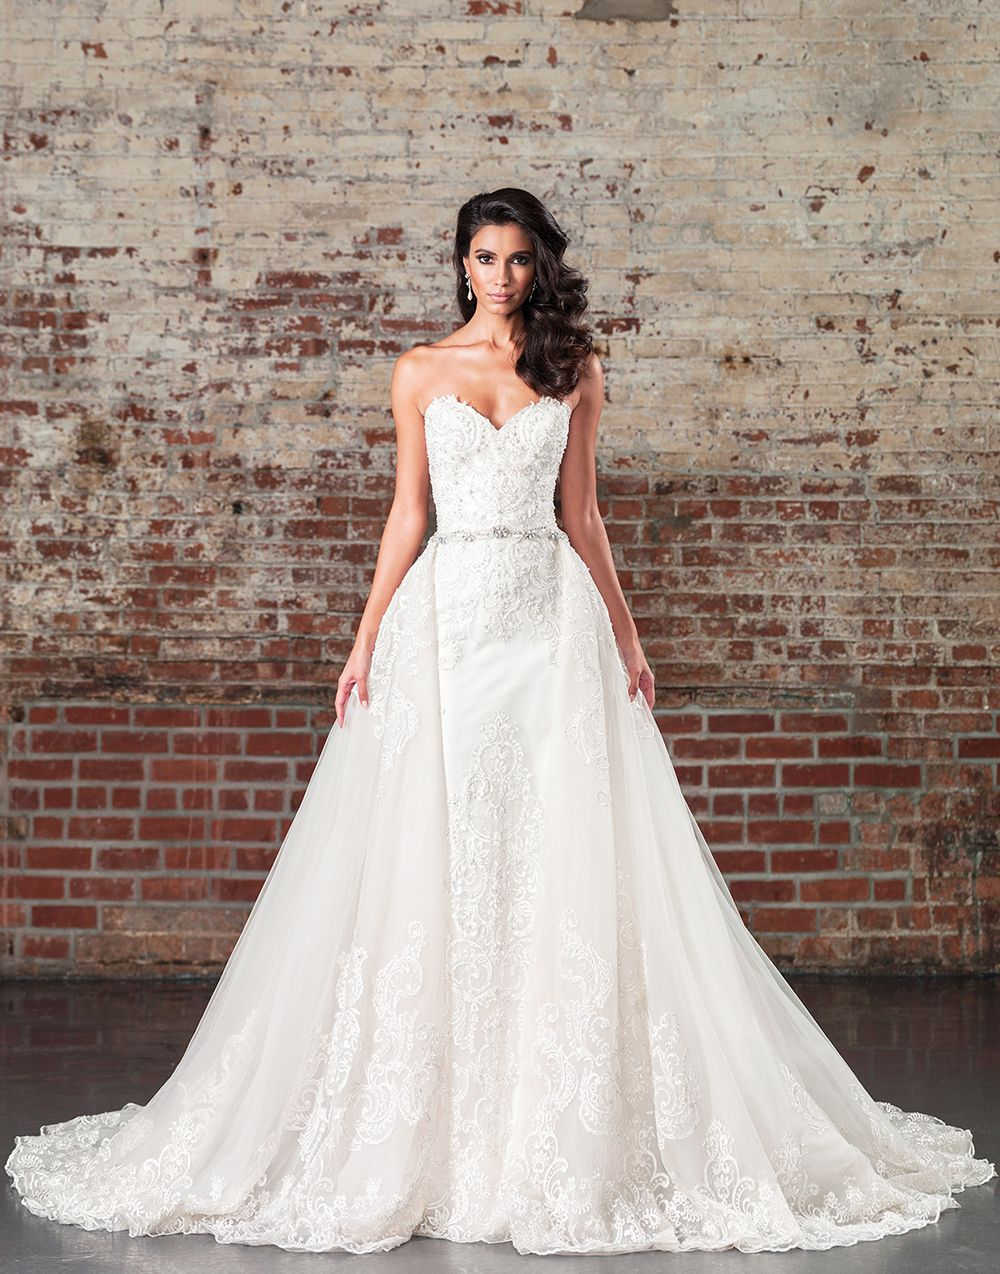 a2959cfaf74a Walk down the aisle in this strapless sweetheart gown with a detachable  cathedral length skirt with buttons to the end of the train.